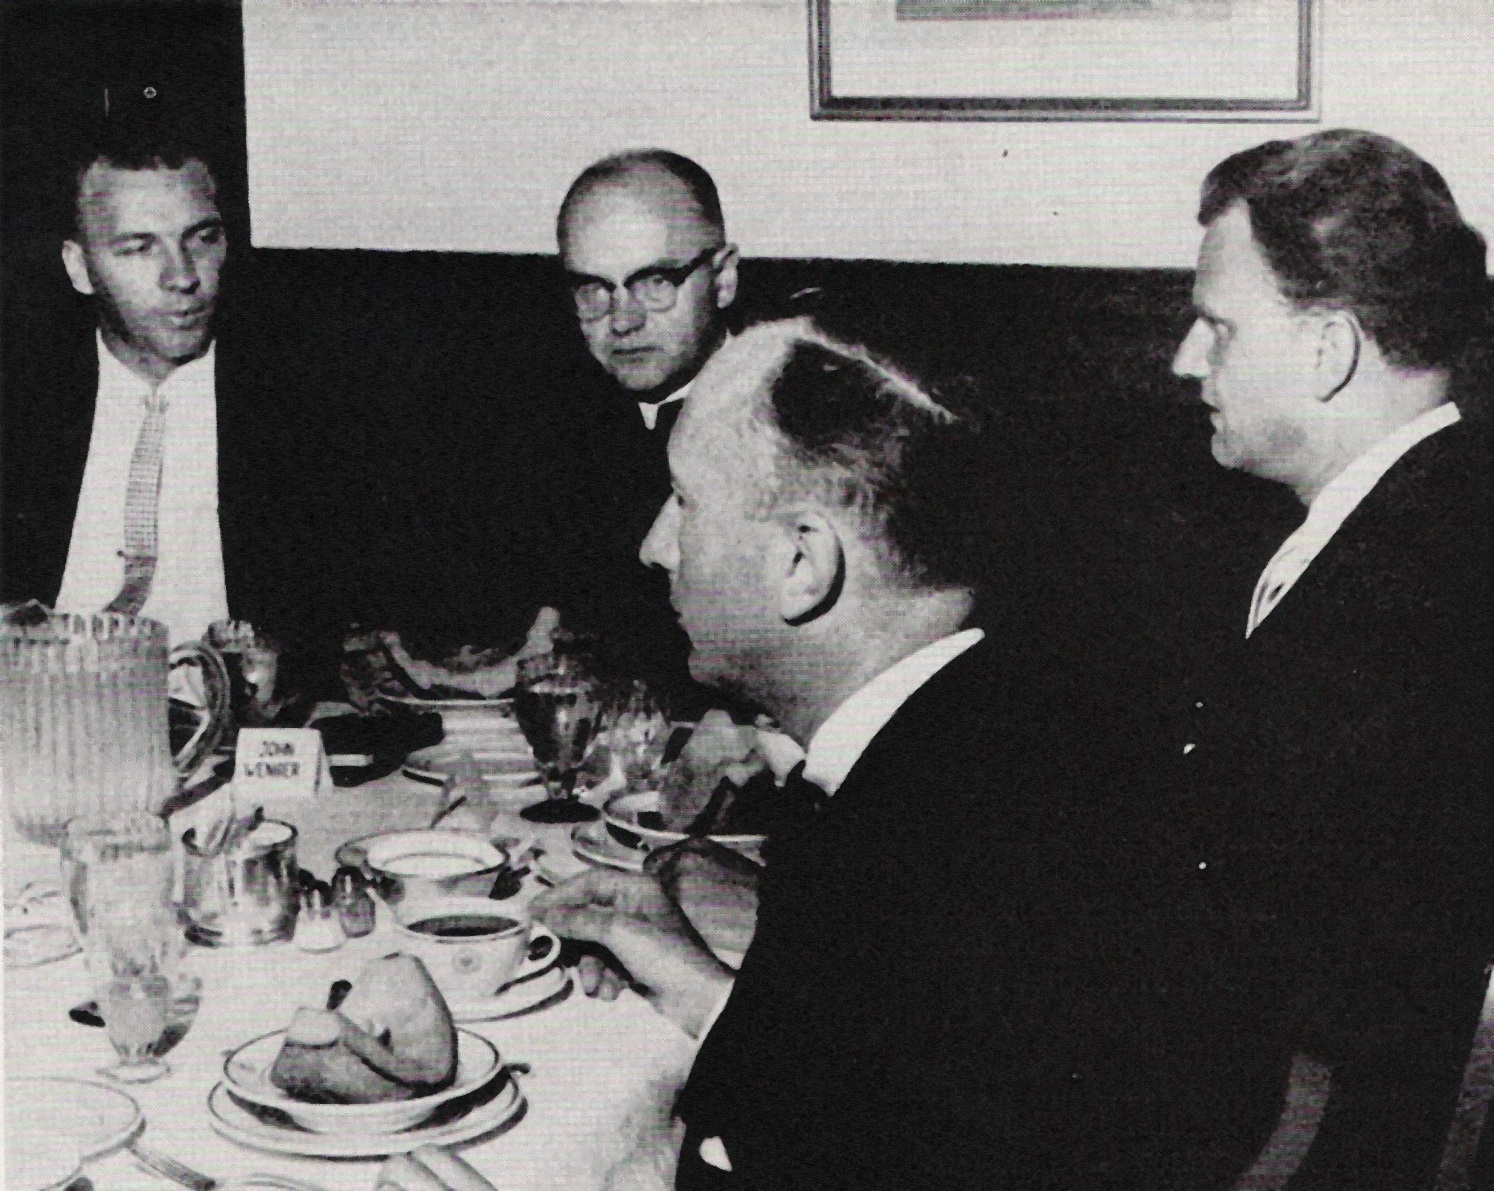 In this photo from the Evangelical Visitor, Billy Graham (third from left) meets with representatives of the Mennonite Church